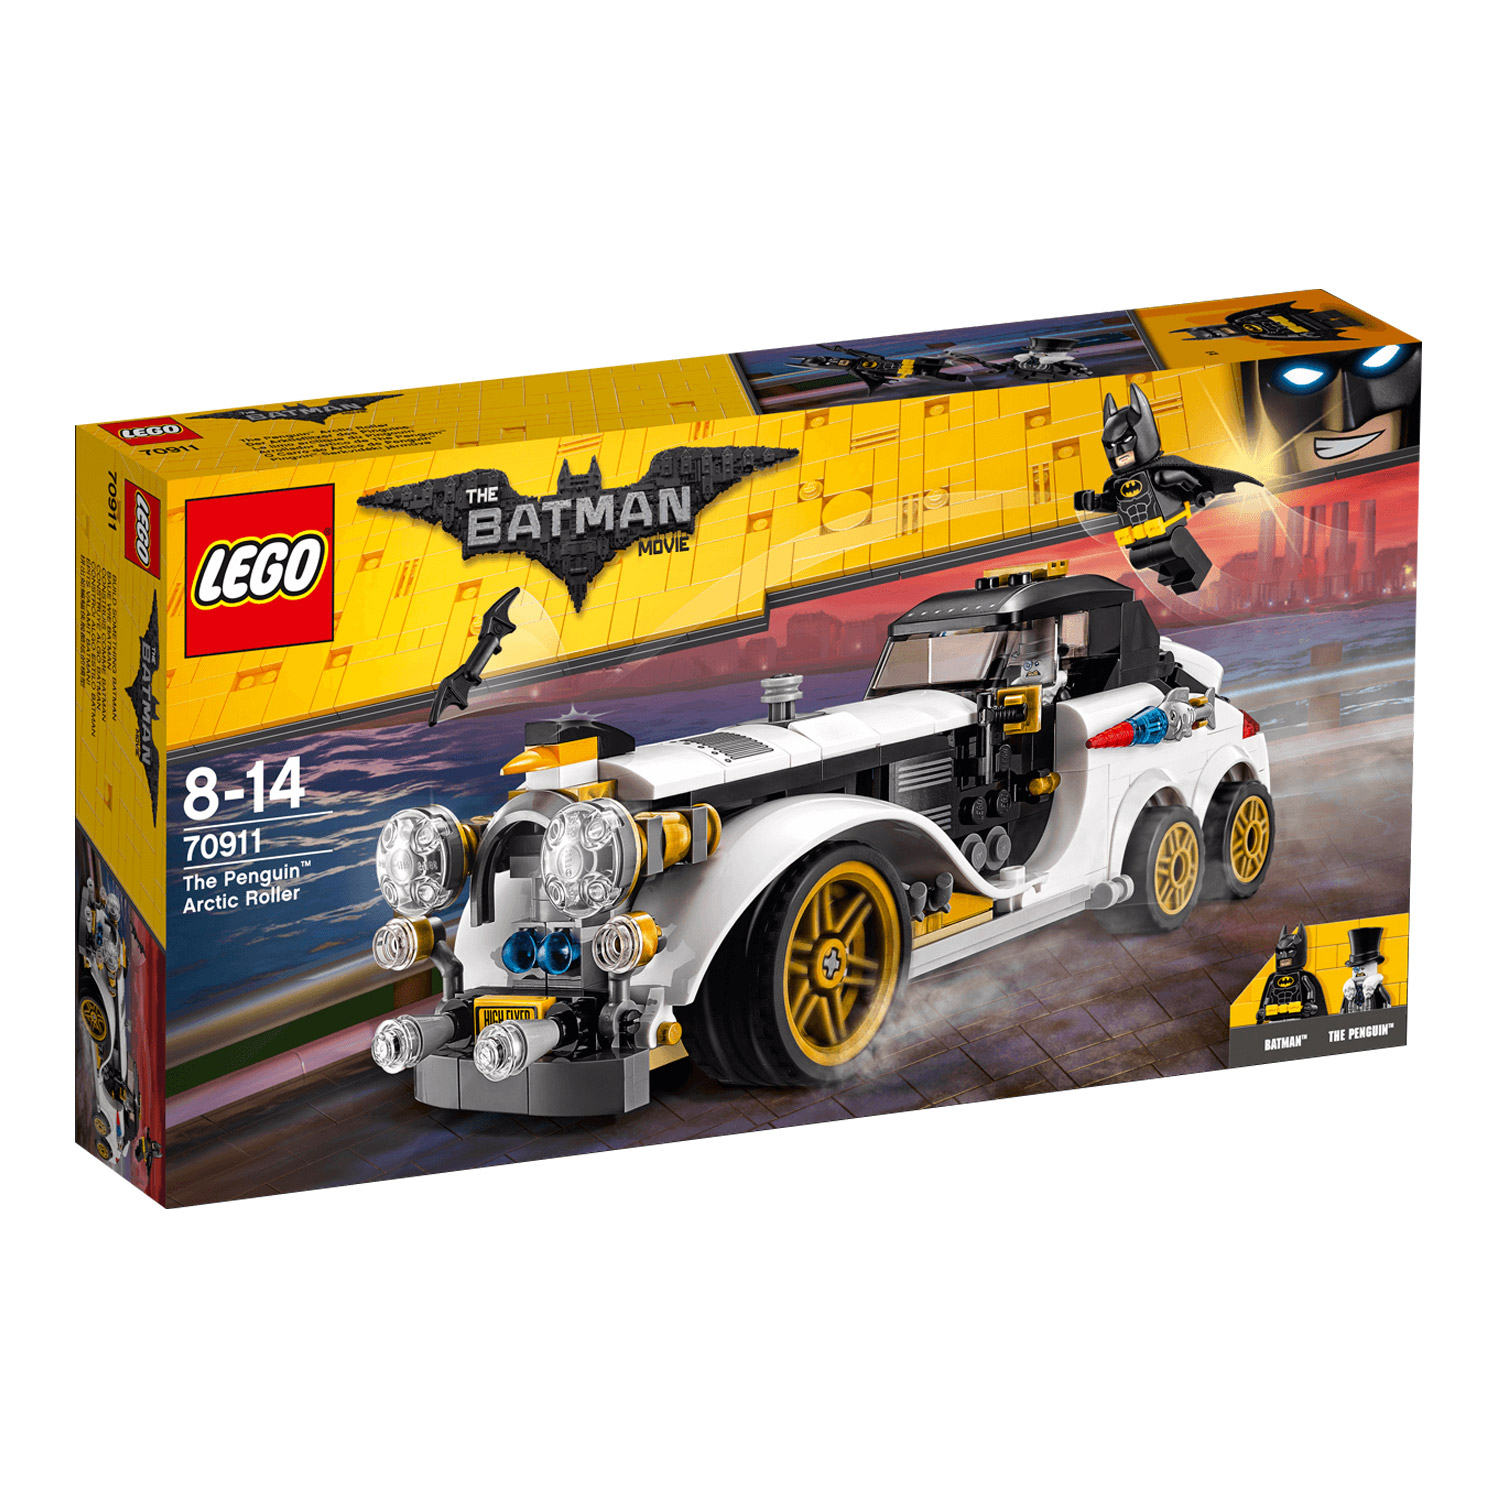 Batman The 70911 Movie 70911 The Lego® Batman Lego® Movie F13lJTKcu